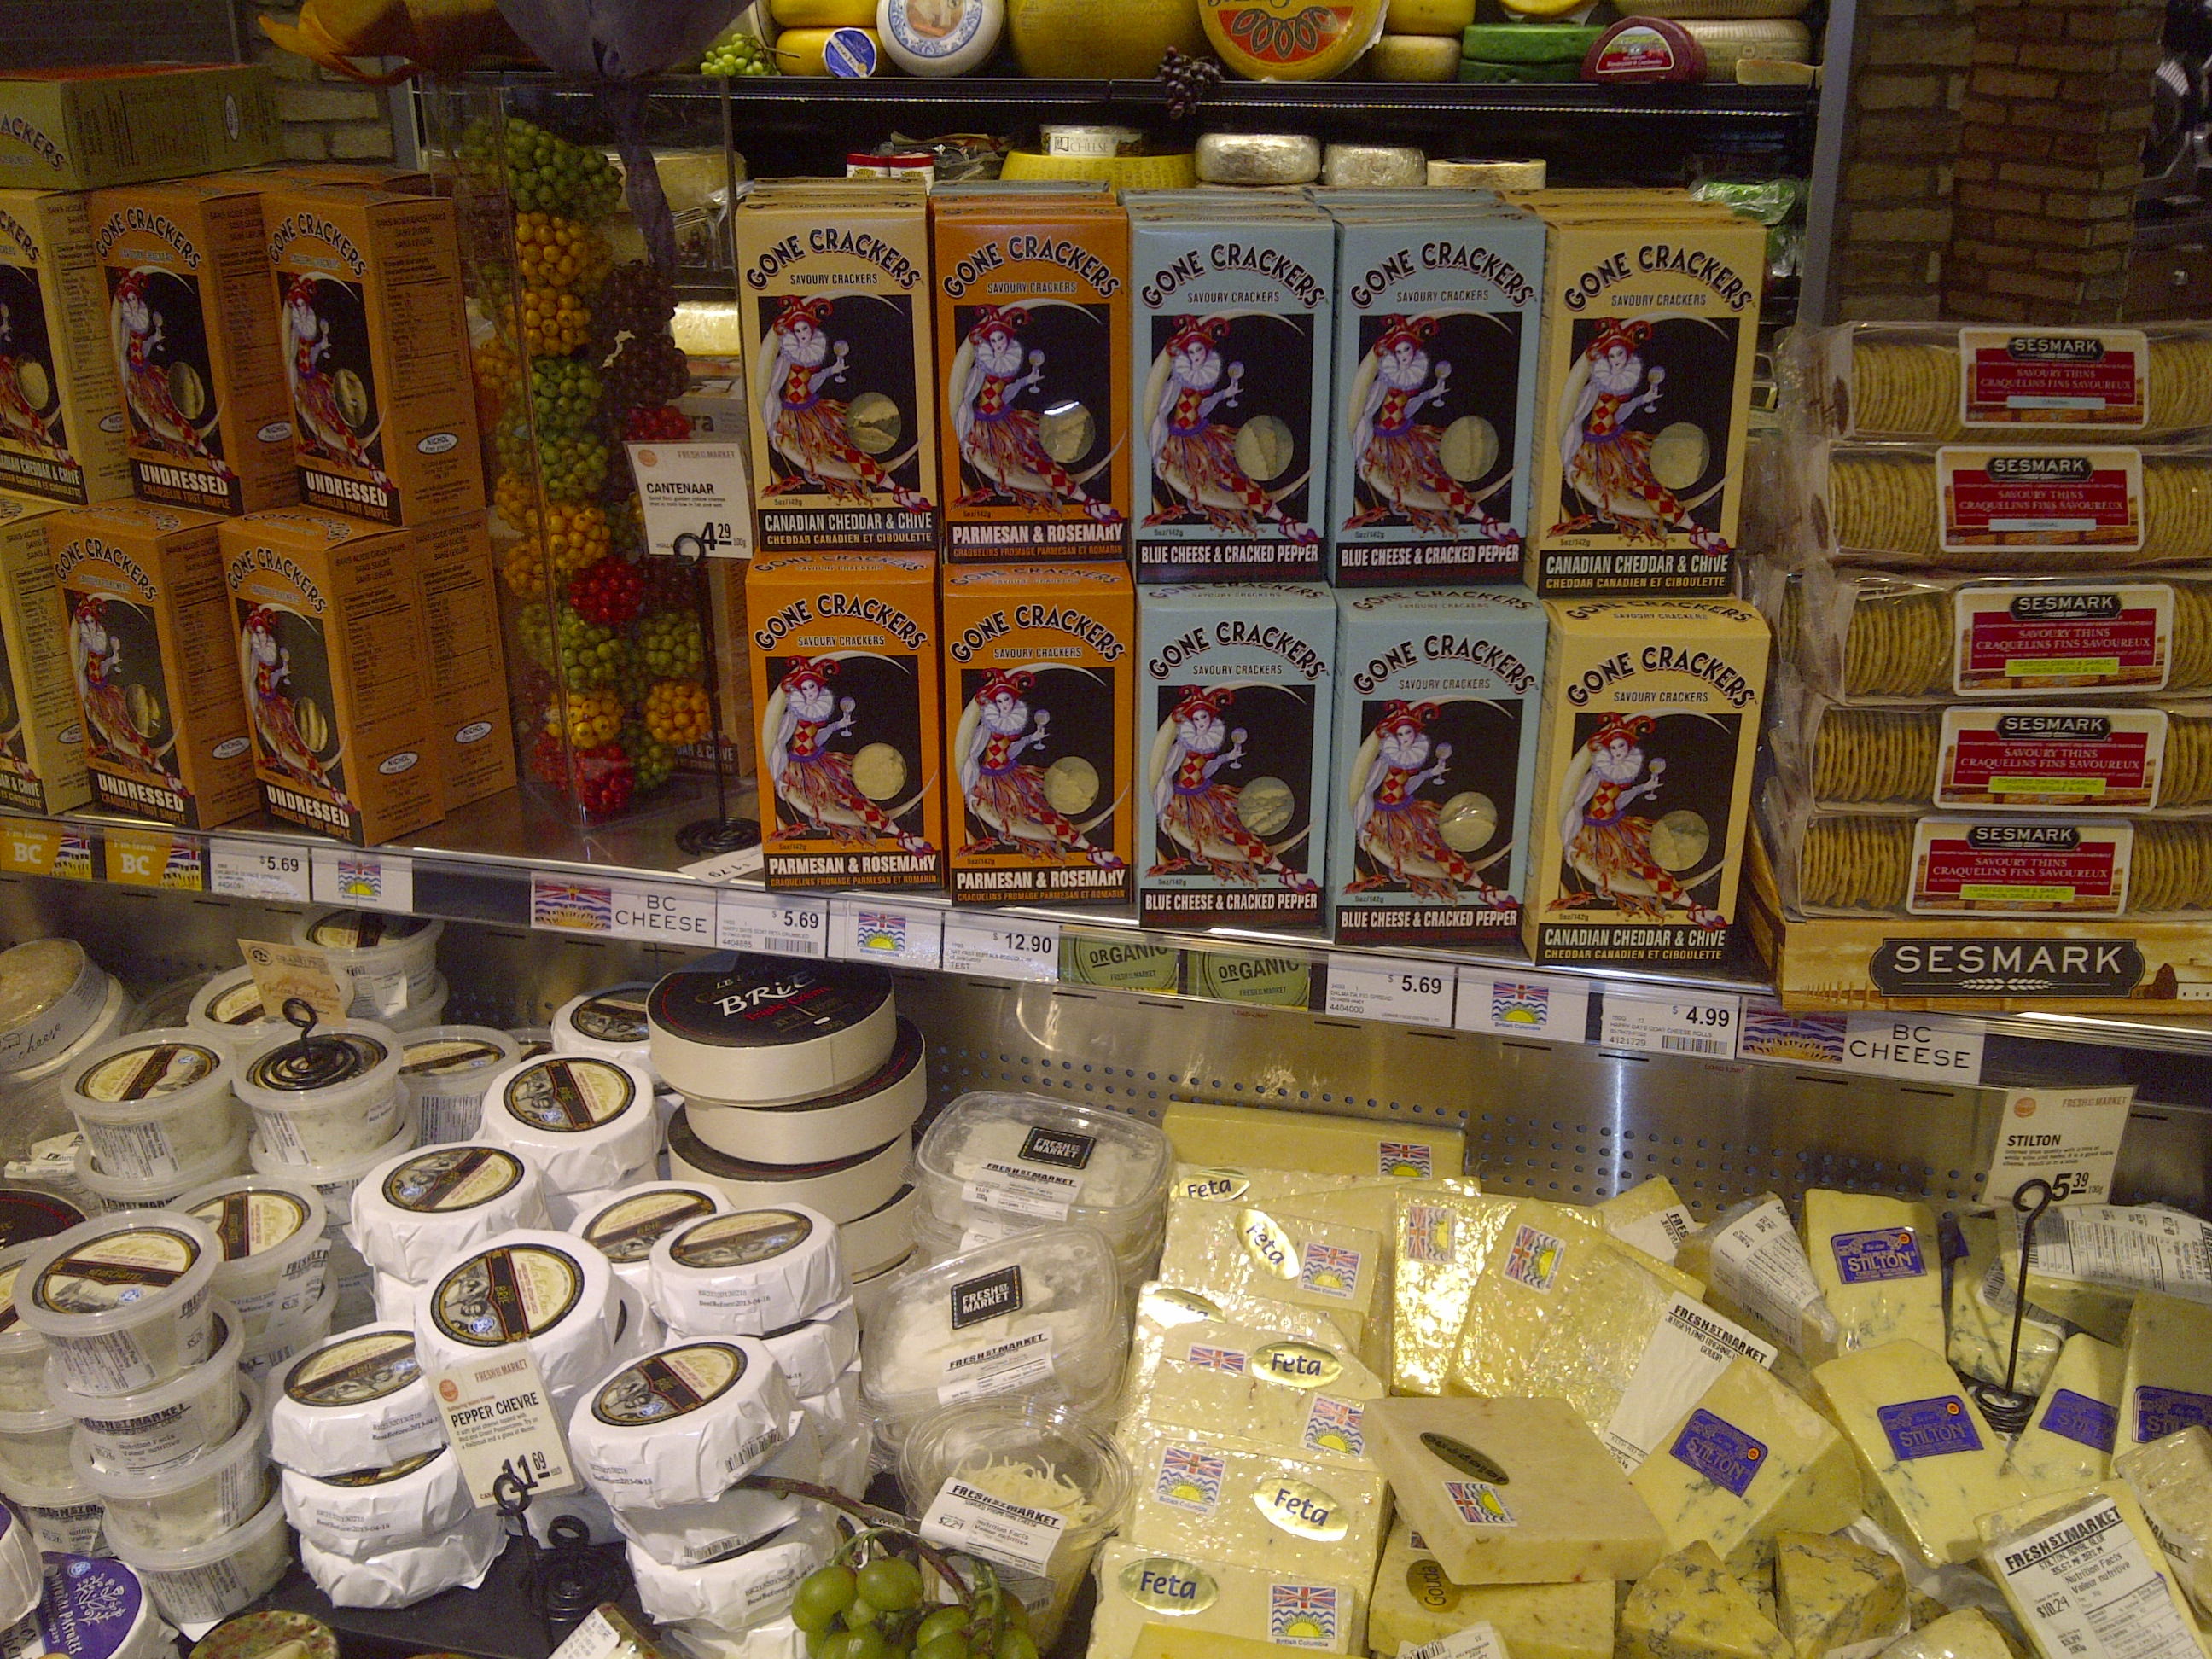 Gone Crackers displayed at Fresh St Market